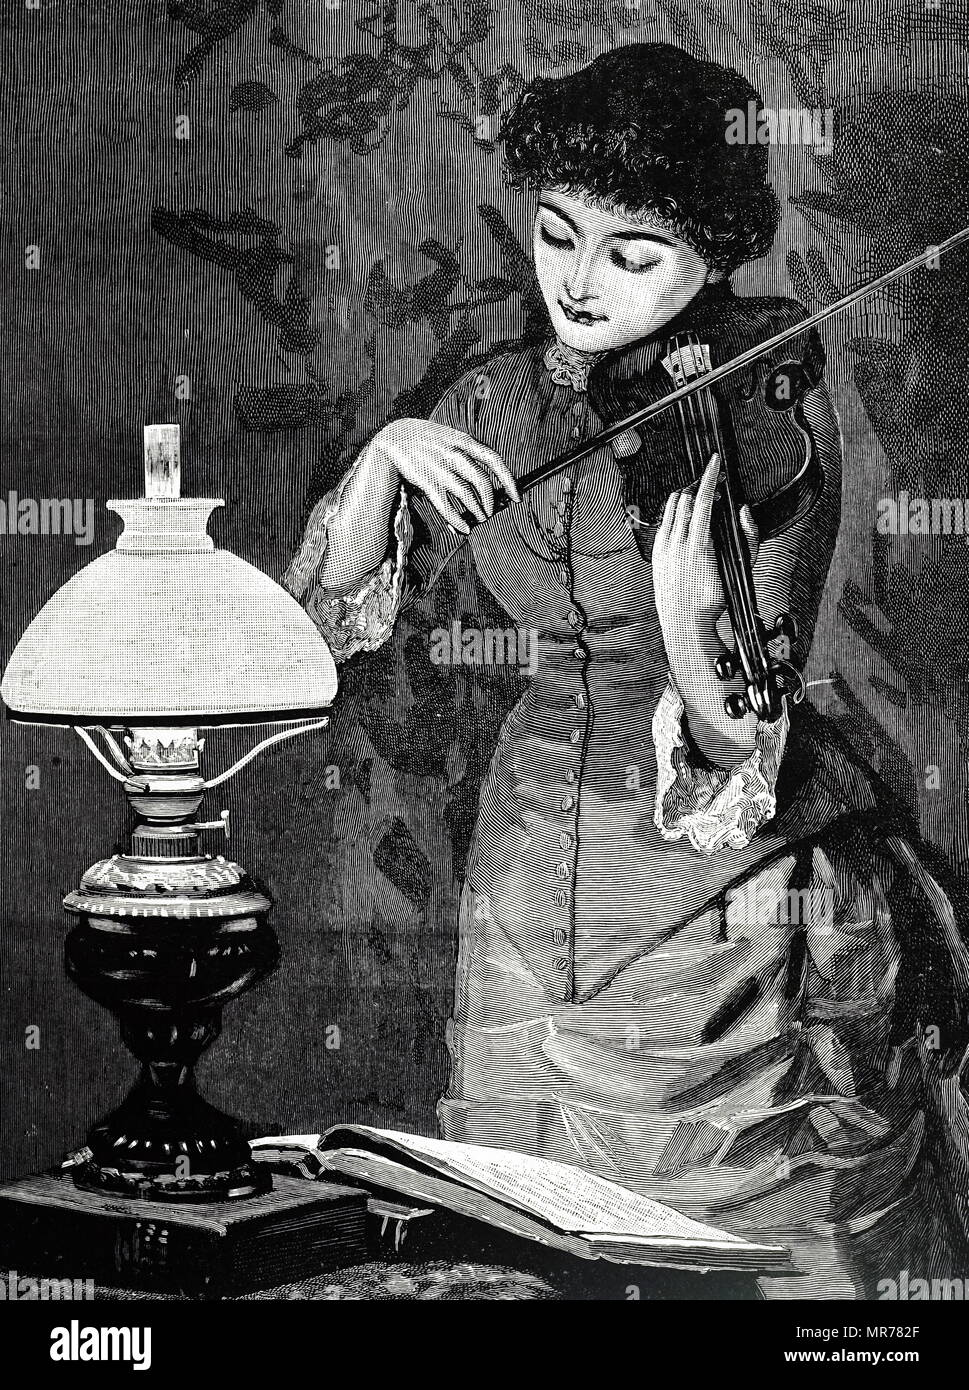 Engraving depicting a typical oil lamp fitted with an opaque glass shade to diffuse the light. Dated 19th century - Stock Image